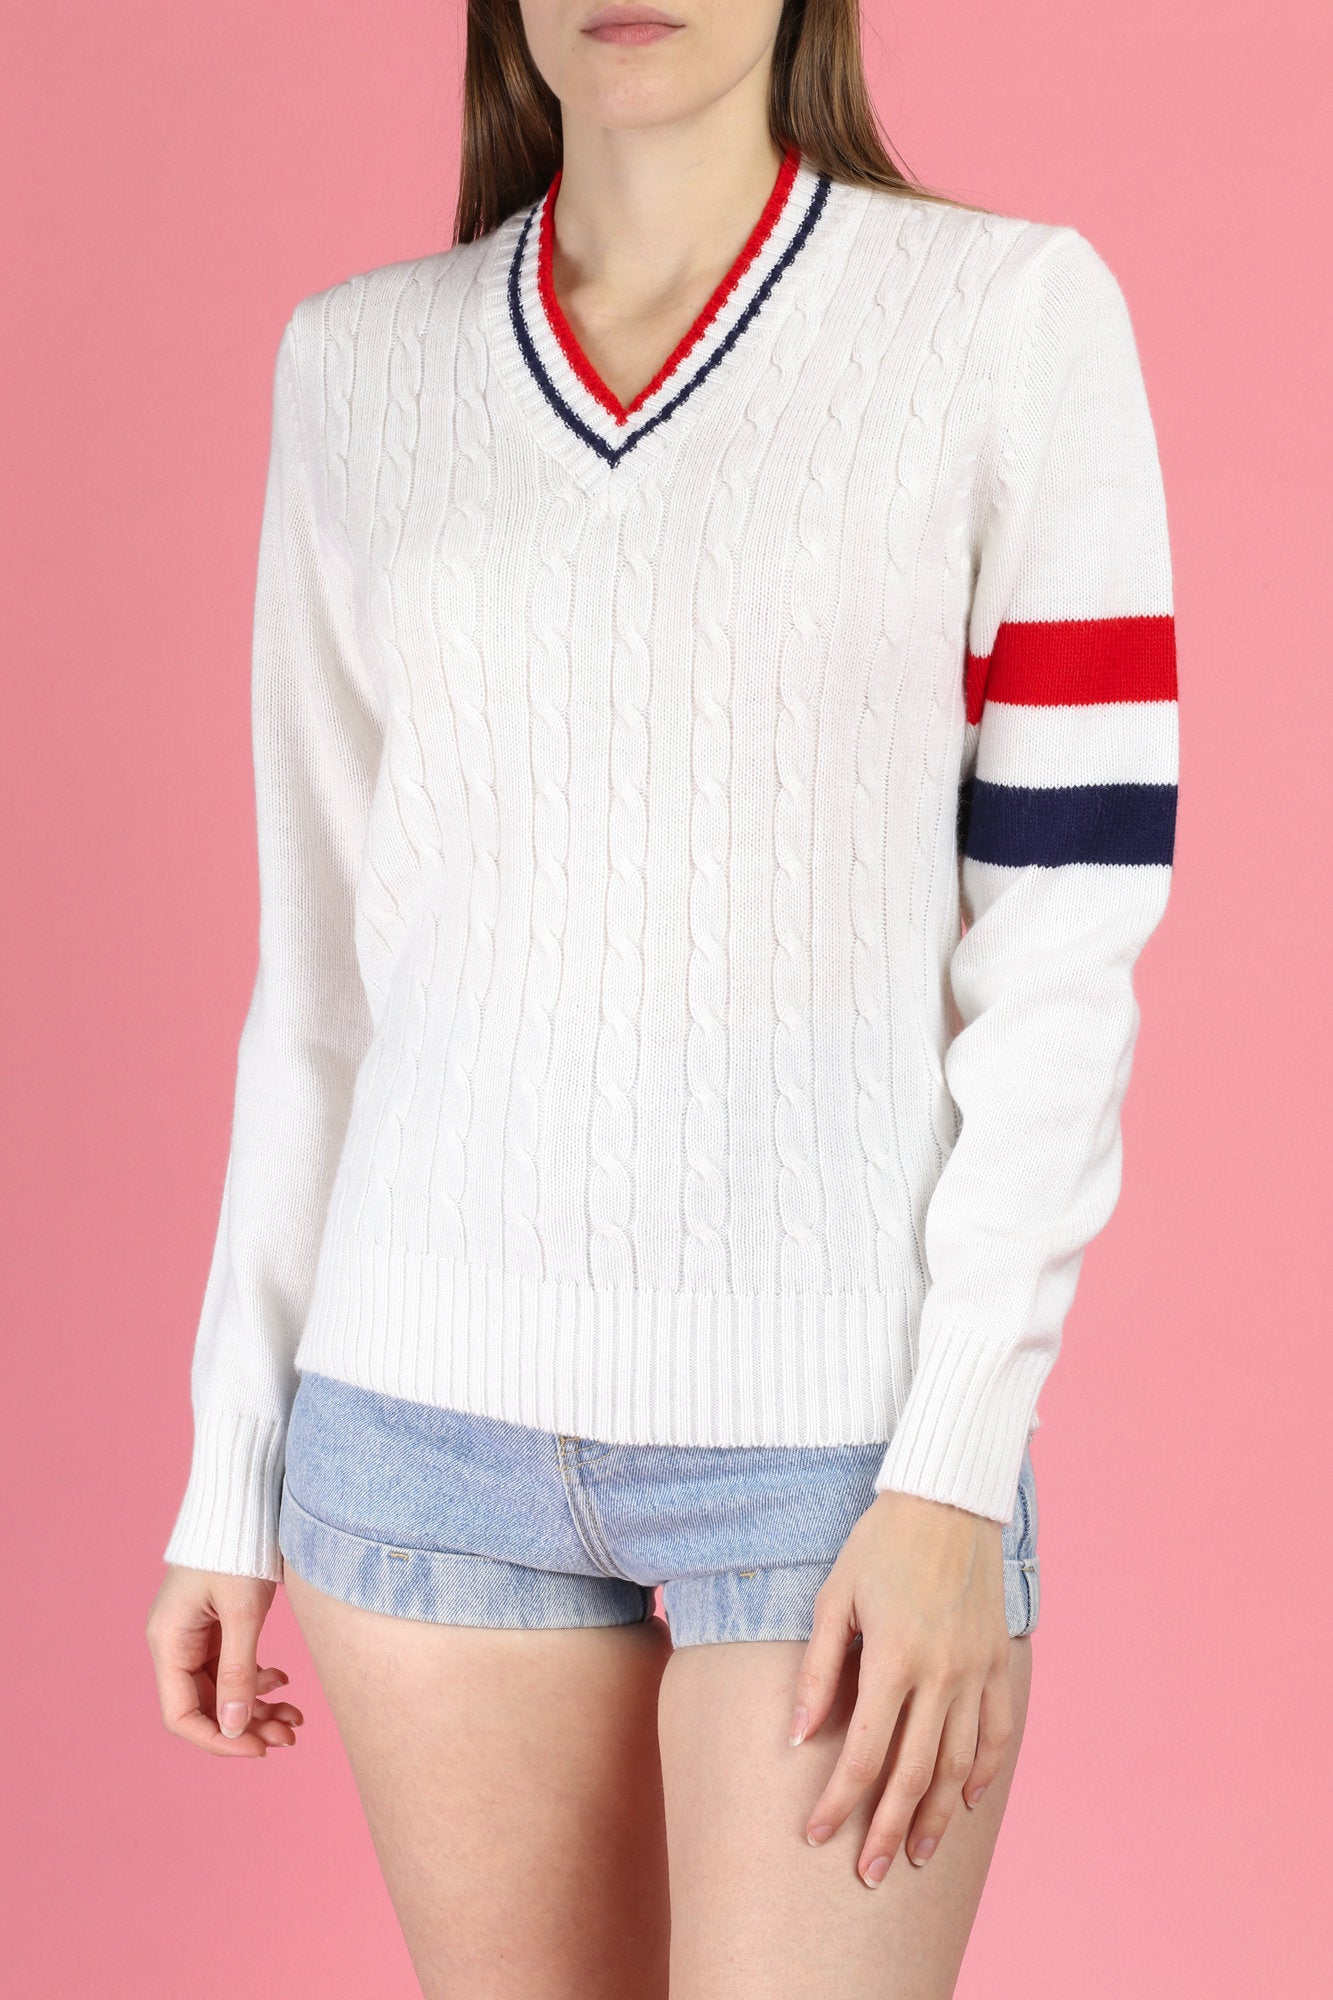 70s Tennis Lady Striped Knit Sweater - Large